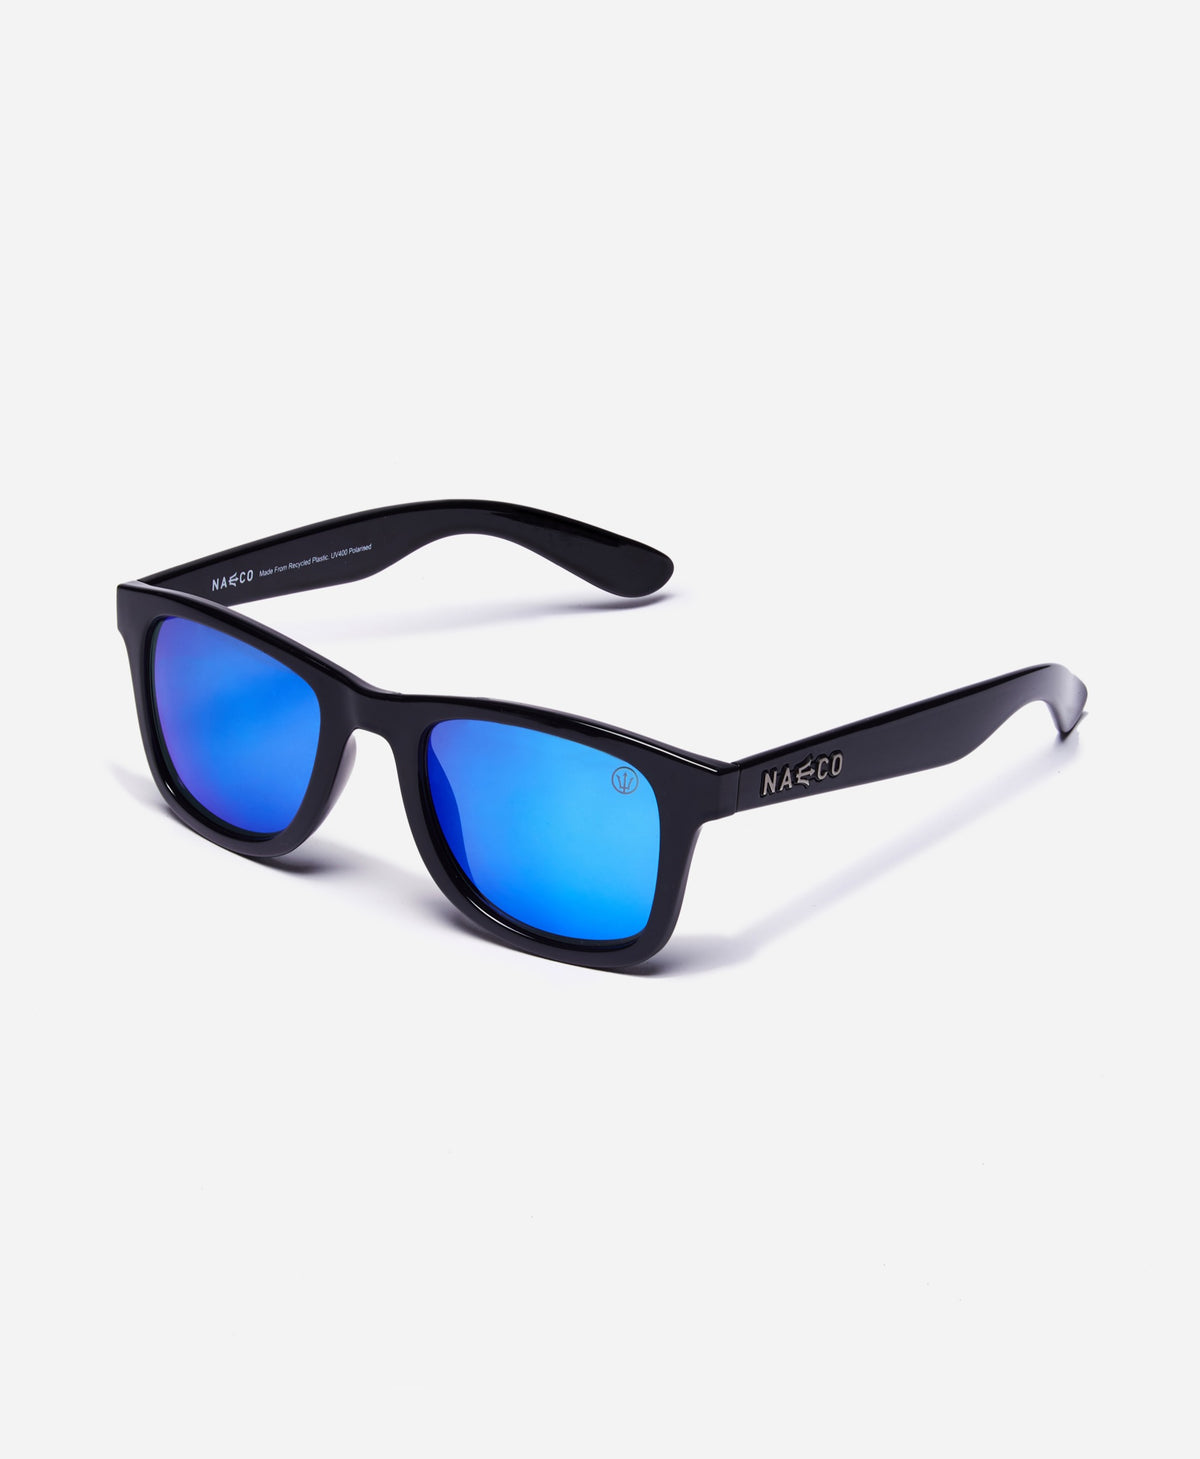 Trident UV Polarised Sunglasses - Gloss Frame - Mirrored Sea Blue